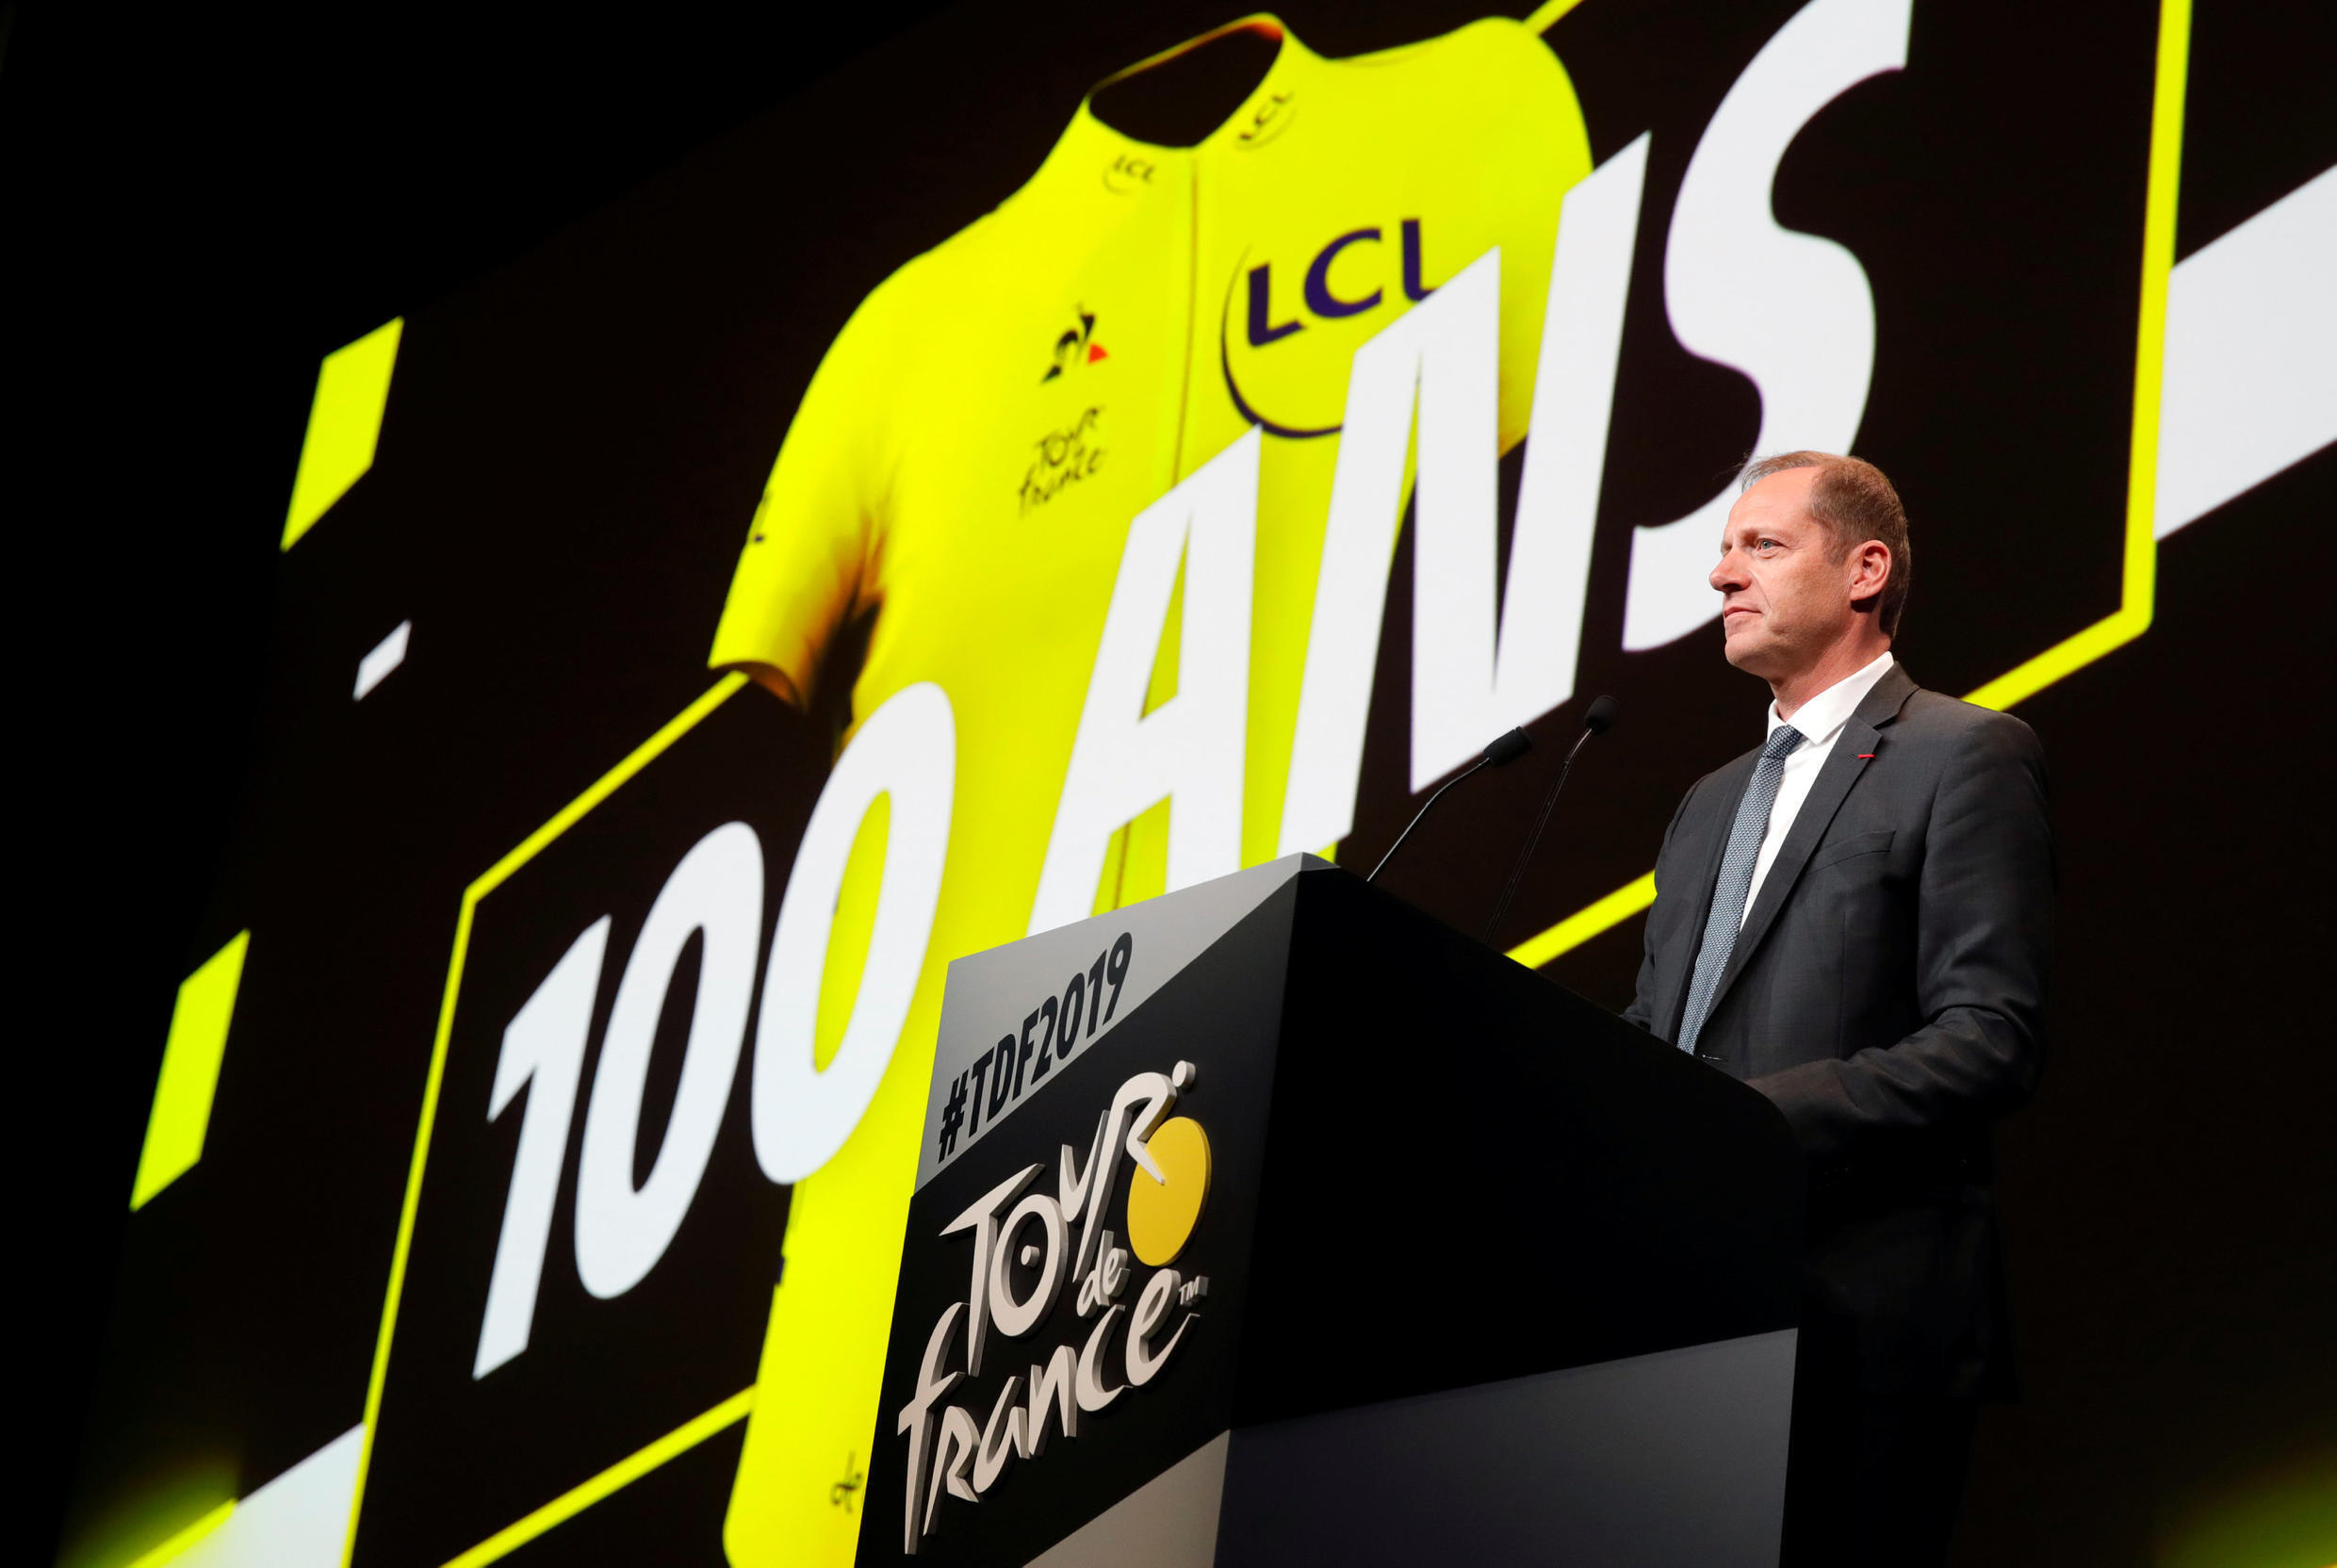 Tour de France director Christian Prudhomme speaks during a news conference to unveil the itinerary of the 2019 Tour de France race.